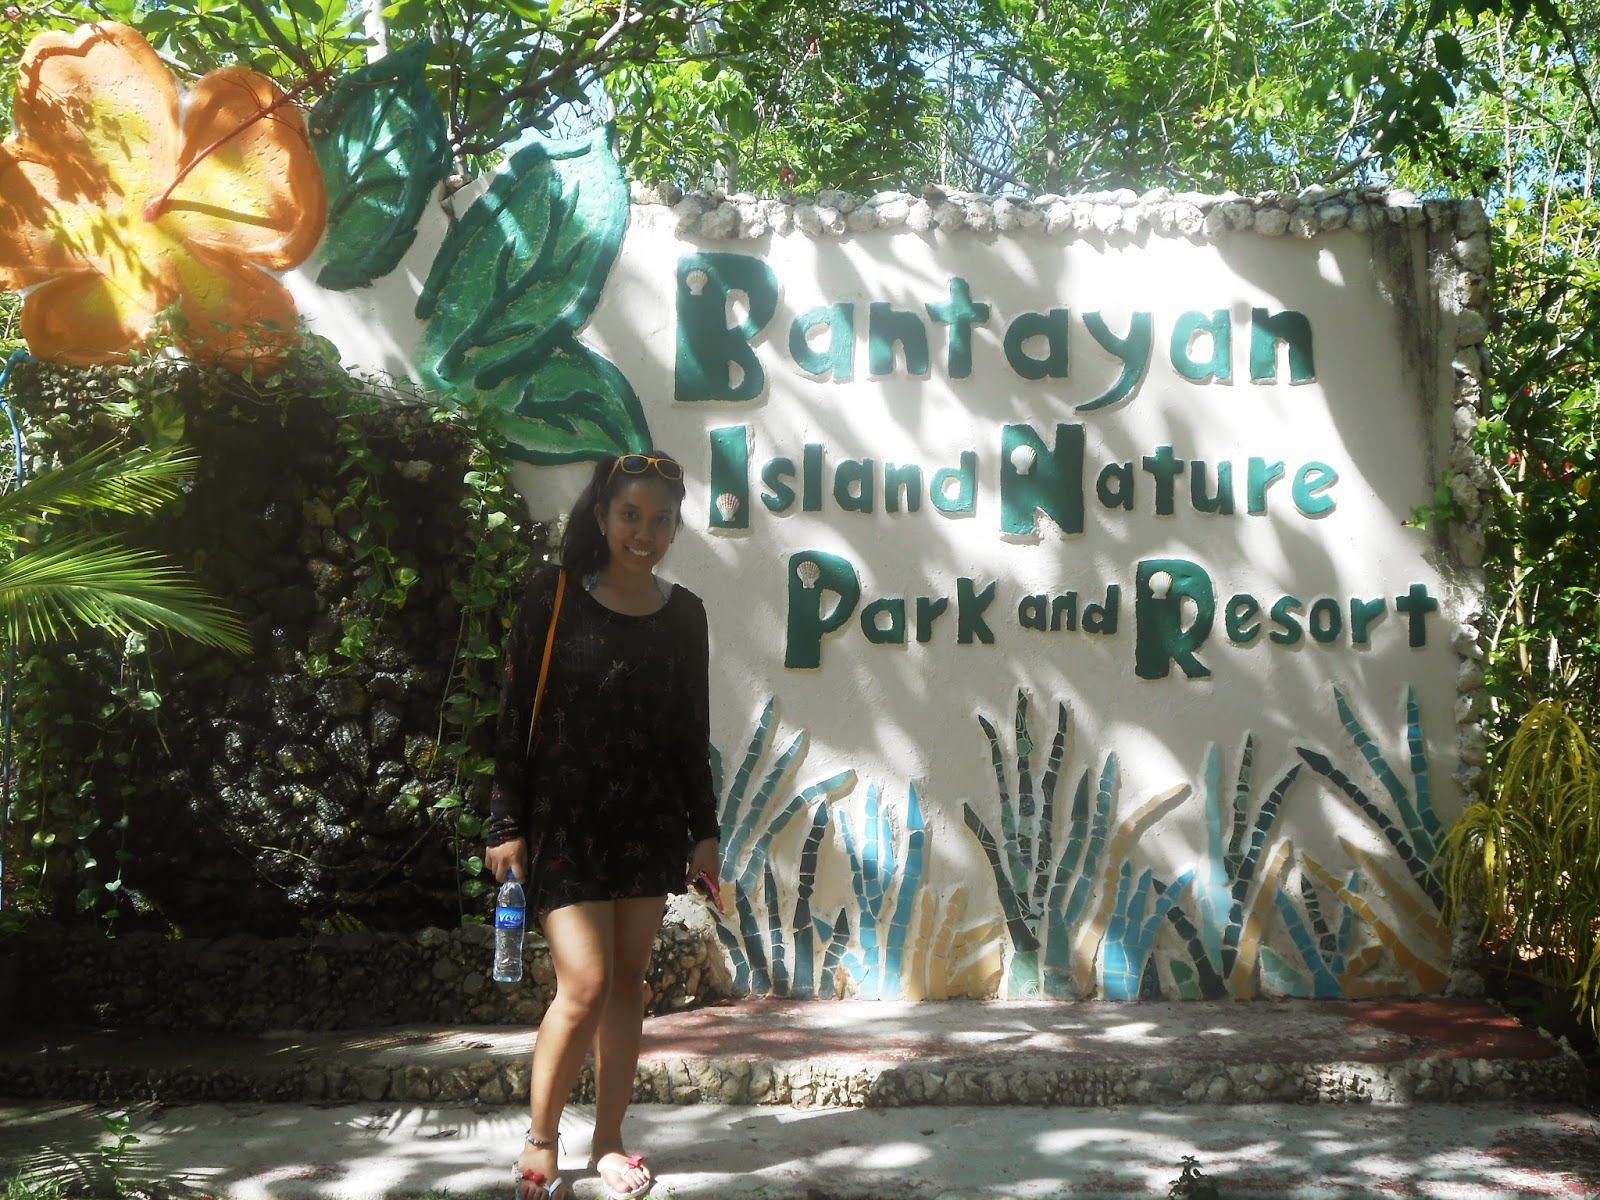 Bantayan Island Nature Park and Resort in Bantayan Island